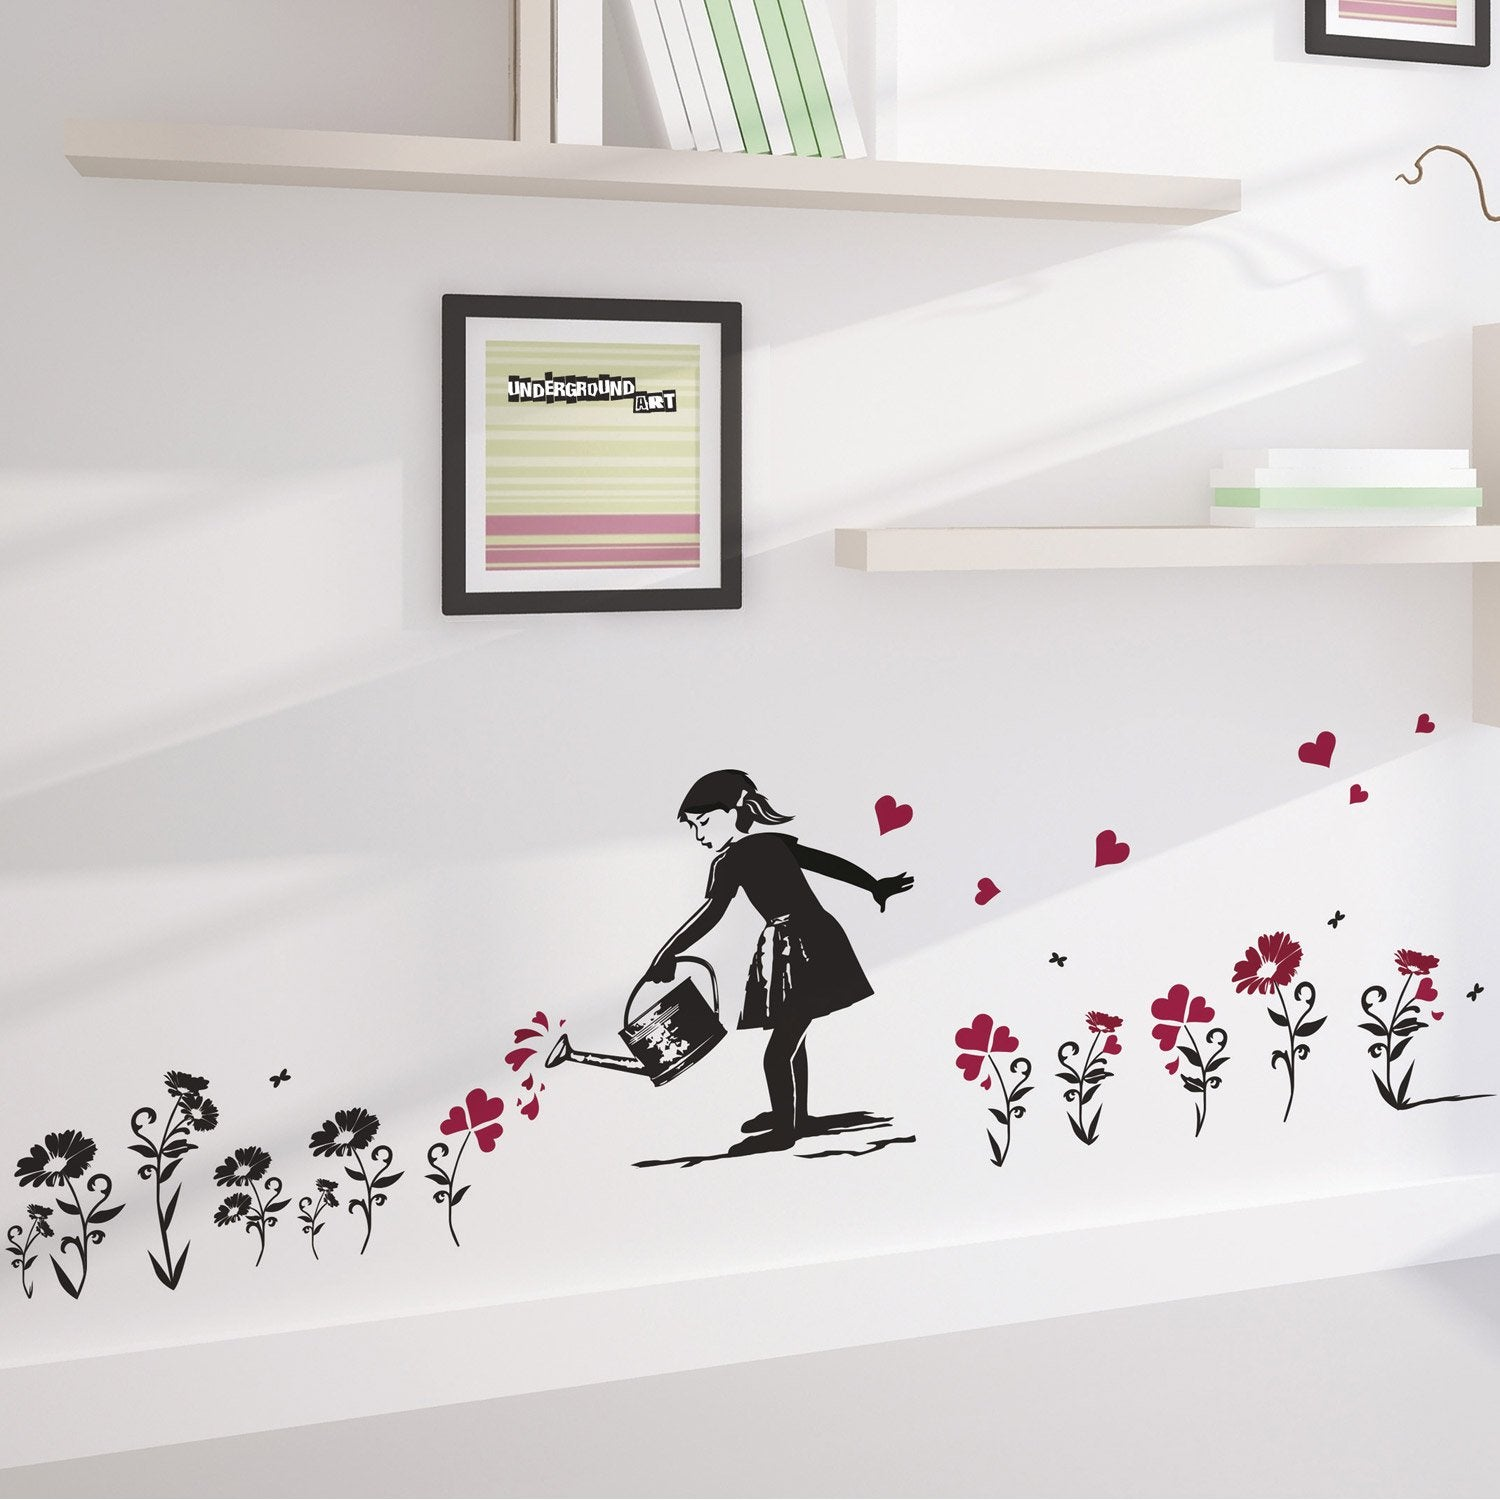 sticker jardinage 50 cm x 70 cm leroy merlin. Black Bedroom Furniture Sets. Home Design Ideas